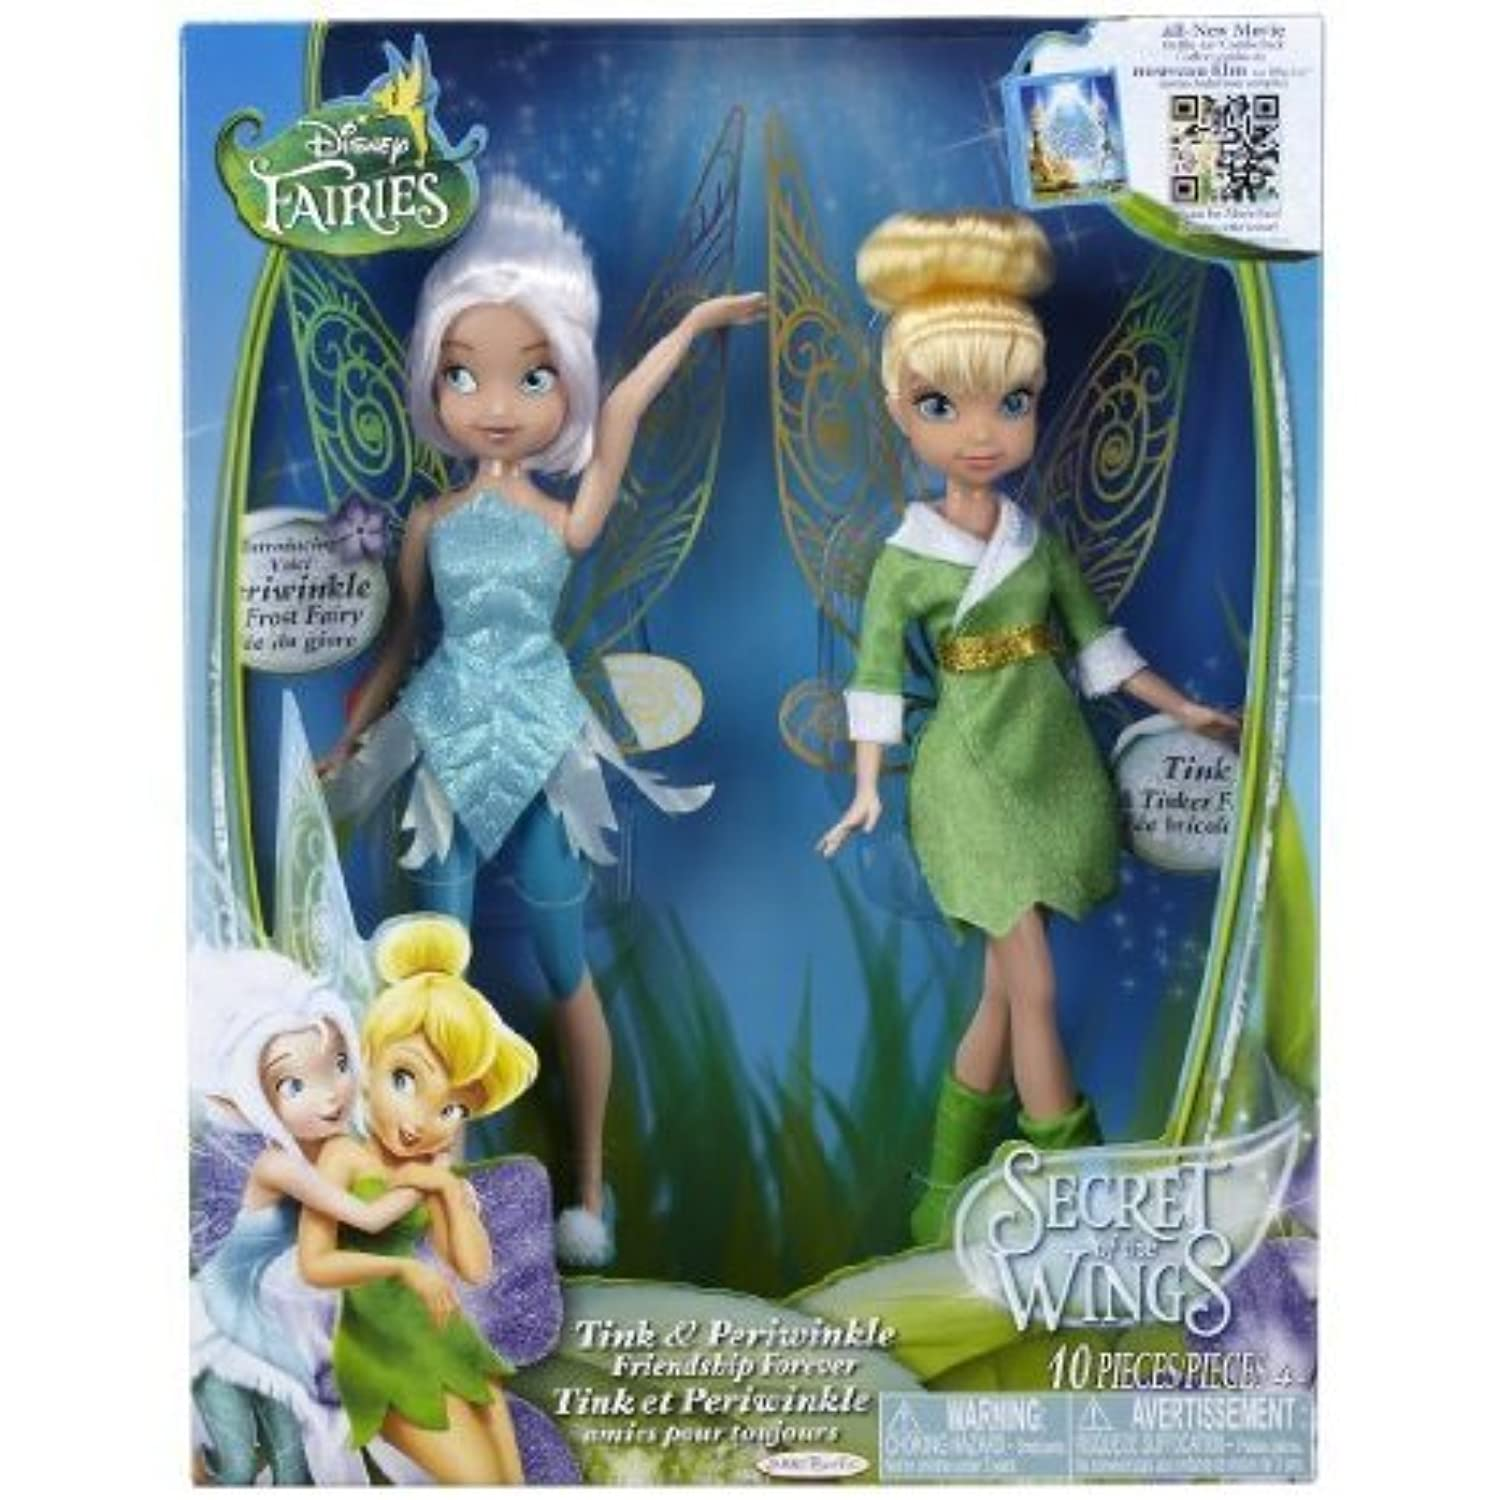 The Disney (ディズニー)Fairies Tink And Periwinkle Friendship Forever Two-Pack, Is A Must-Have For All Disney (ディズニー)Fairies Fans. - Disney (ディズニー)Fairies - Tink and Periwinkle - Friendship Forever - 2 Pack ドール 人形 フィギュア(並行輸入)